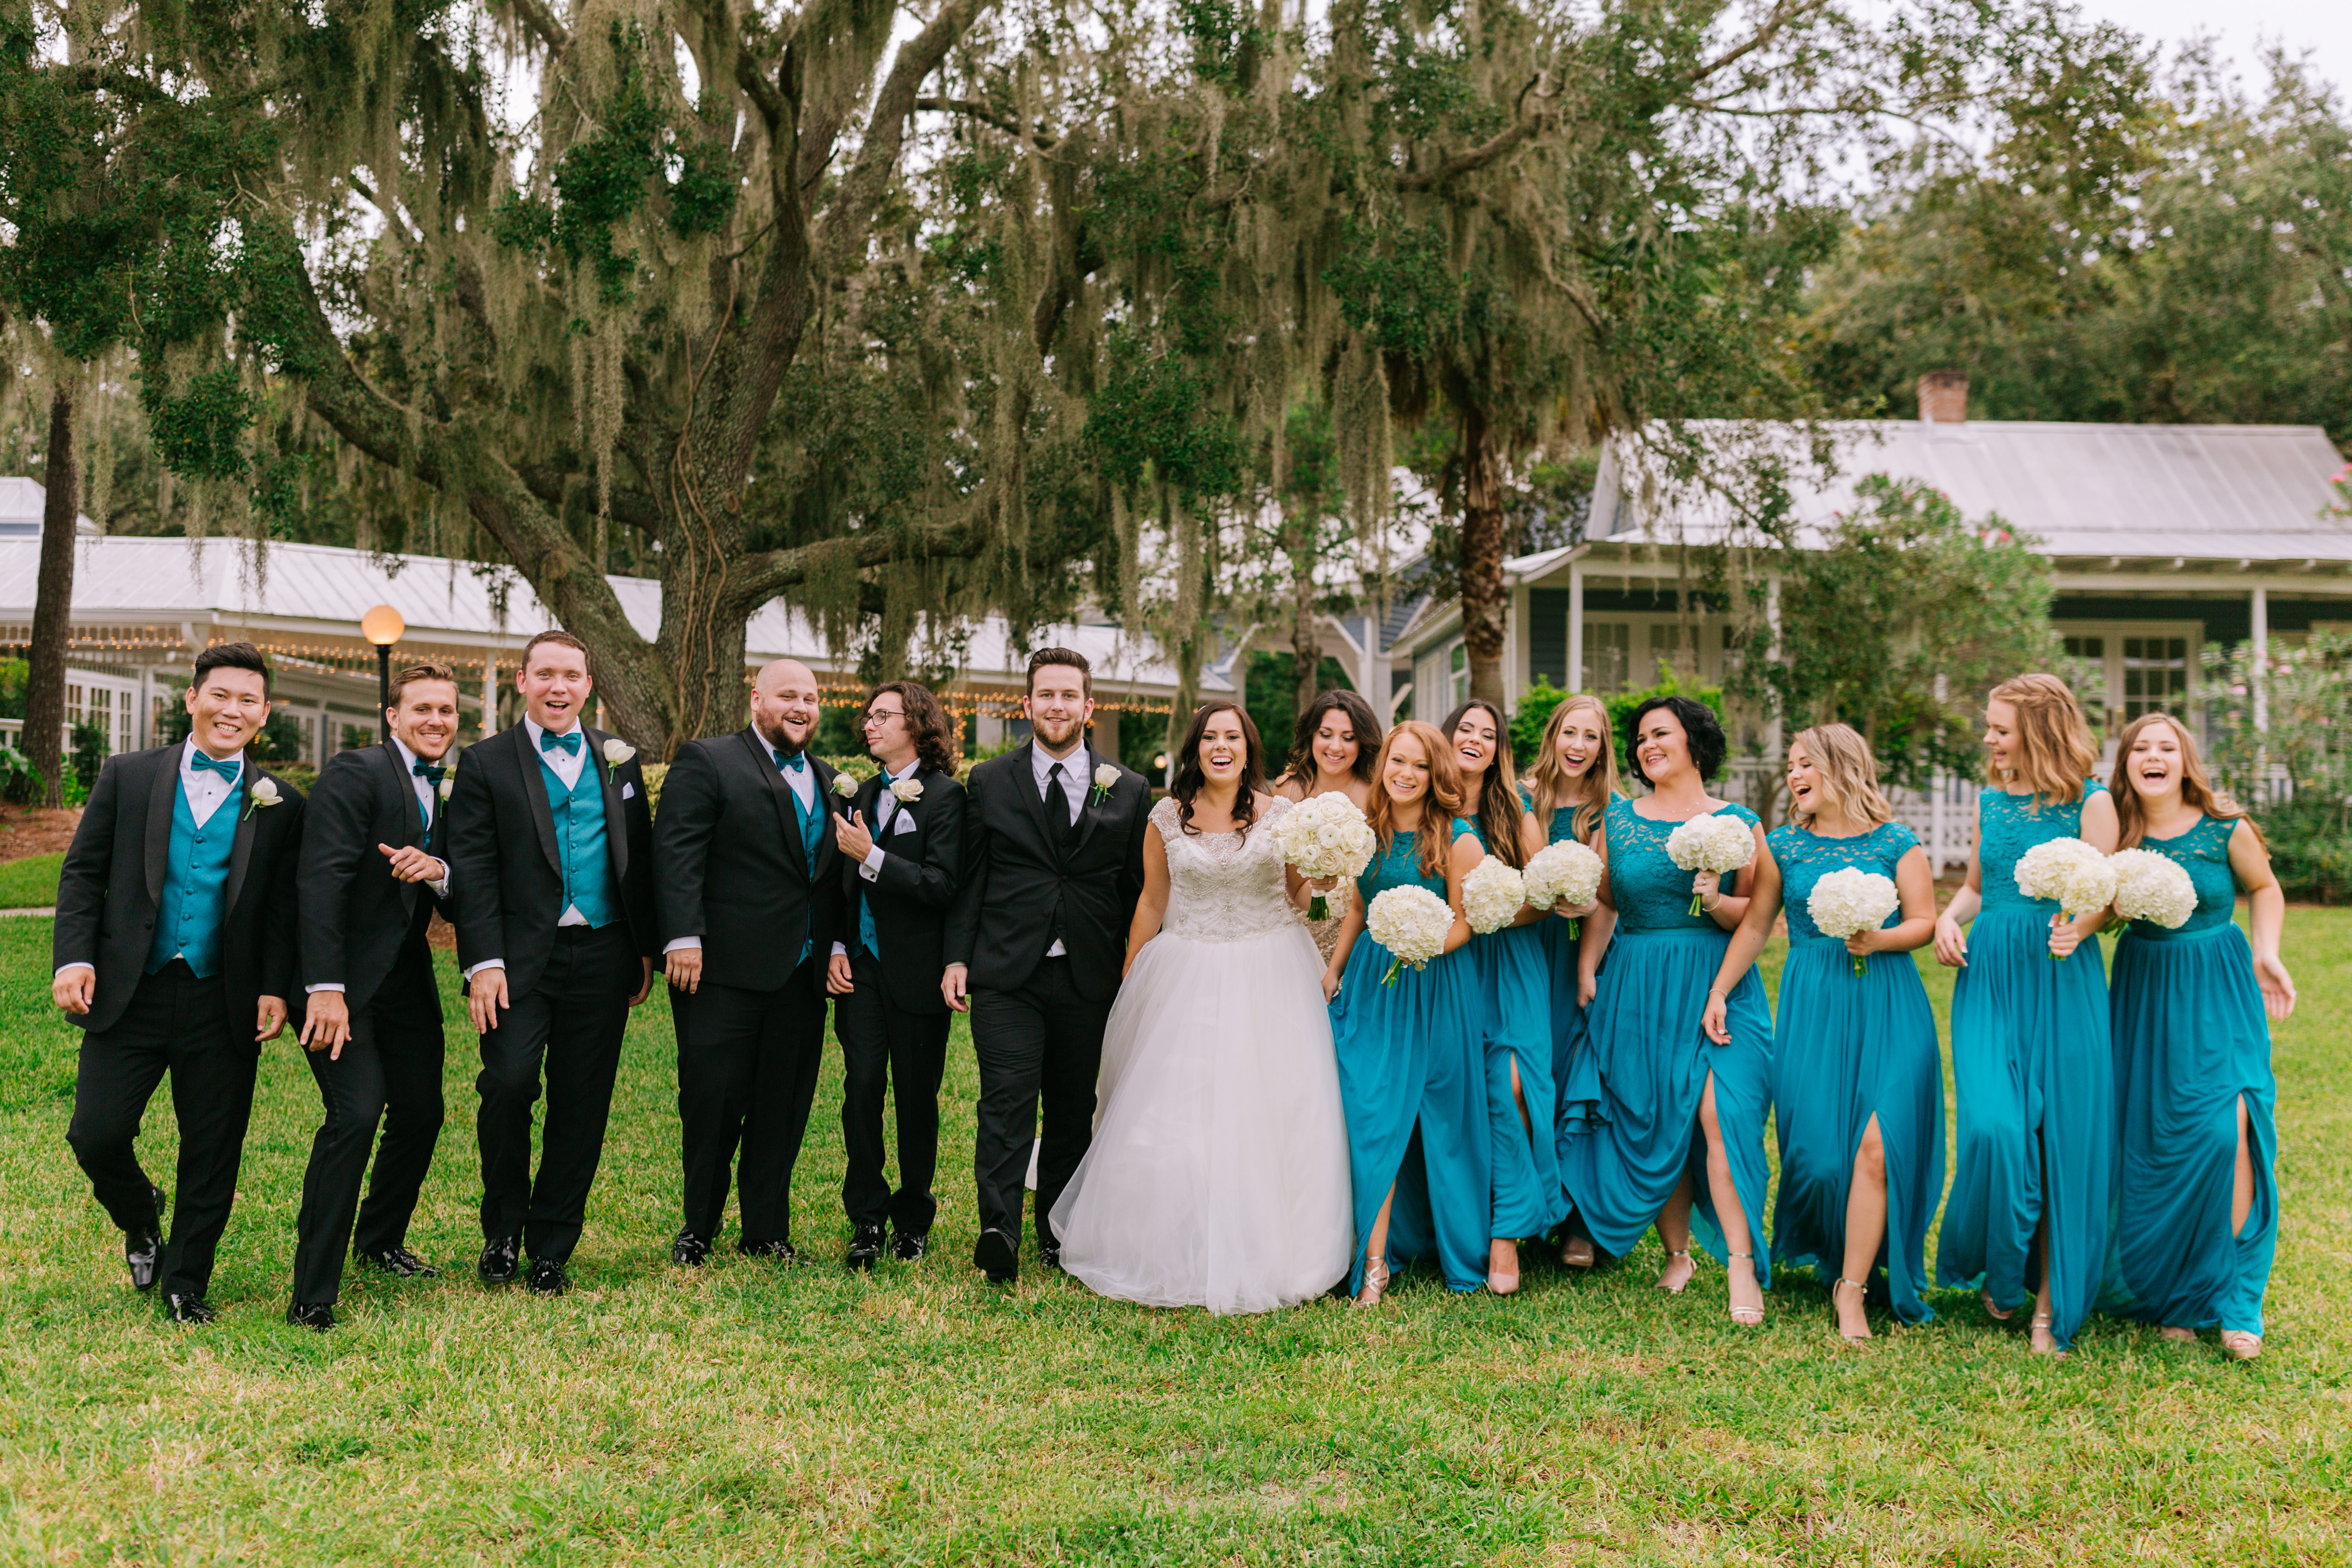 bride, groom, and wedding party posing in the grass